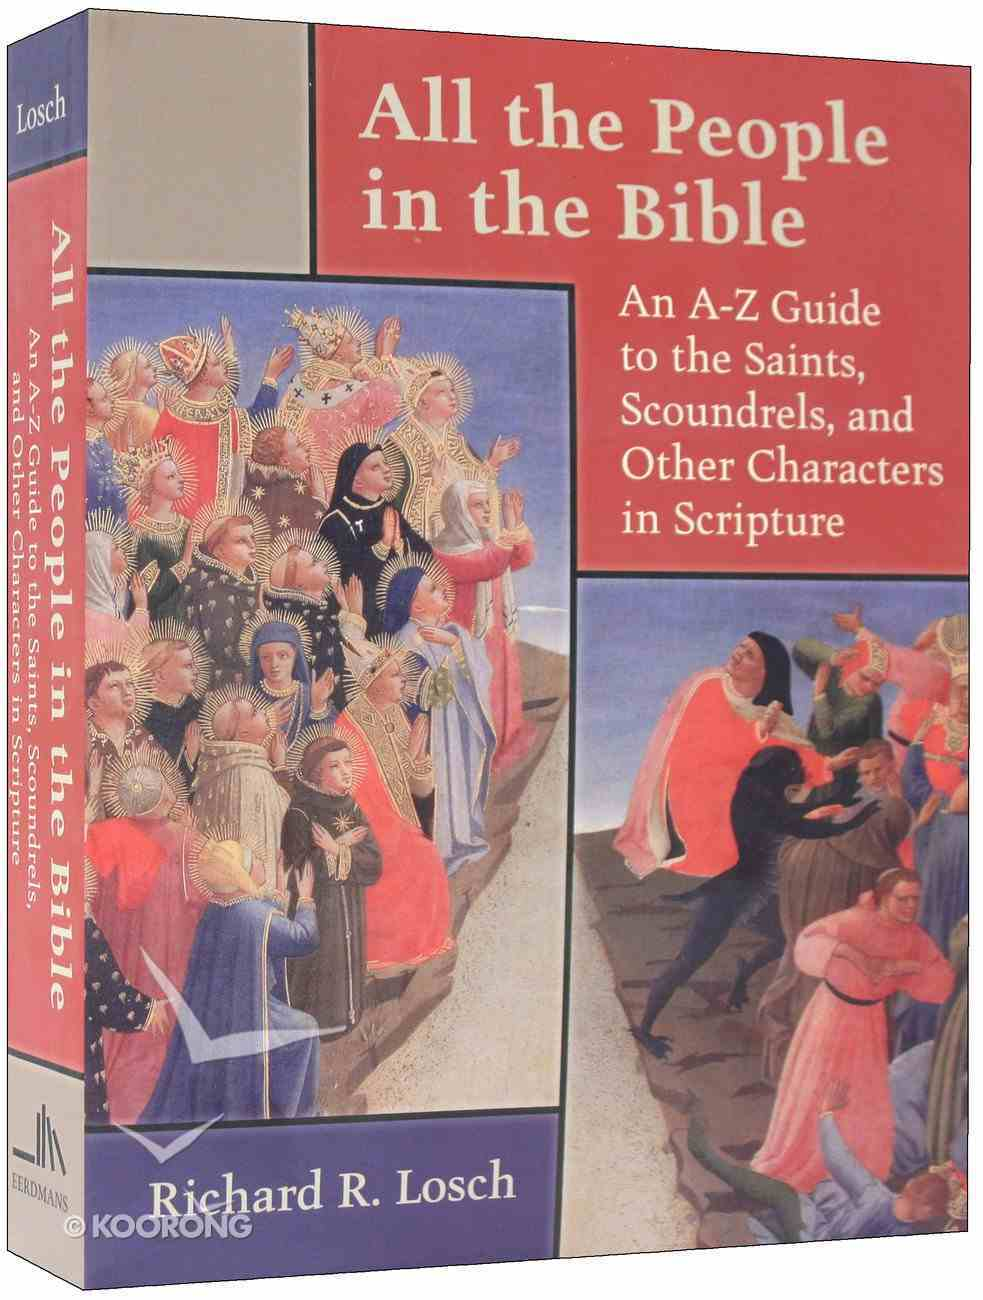 All the People in the Bible Paperback